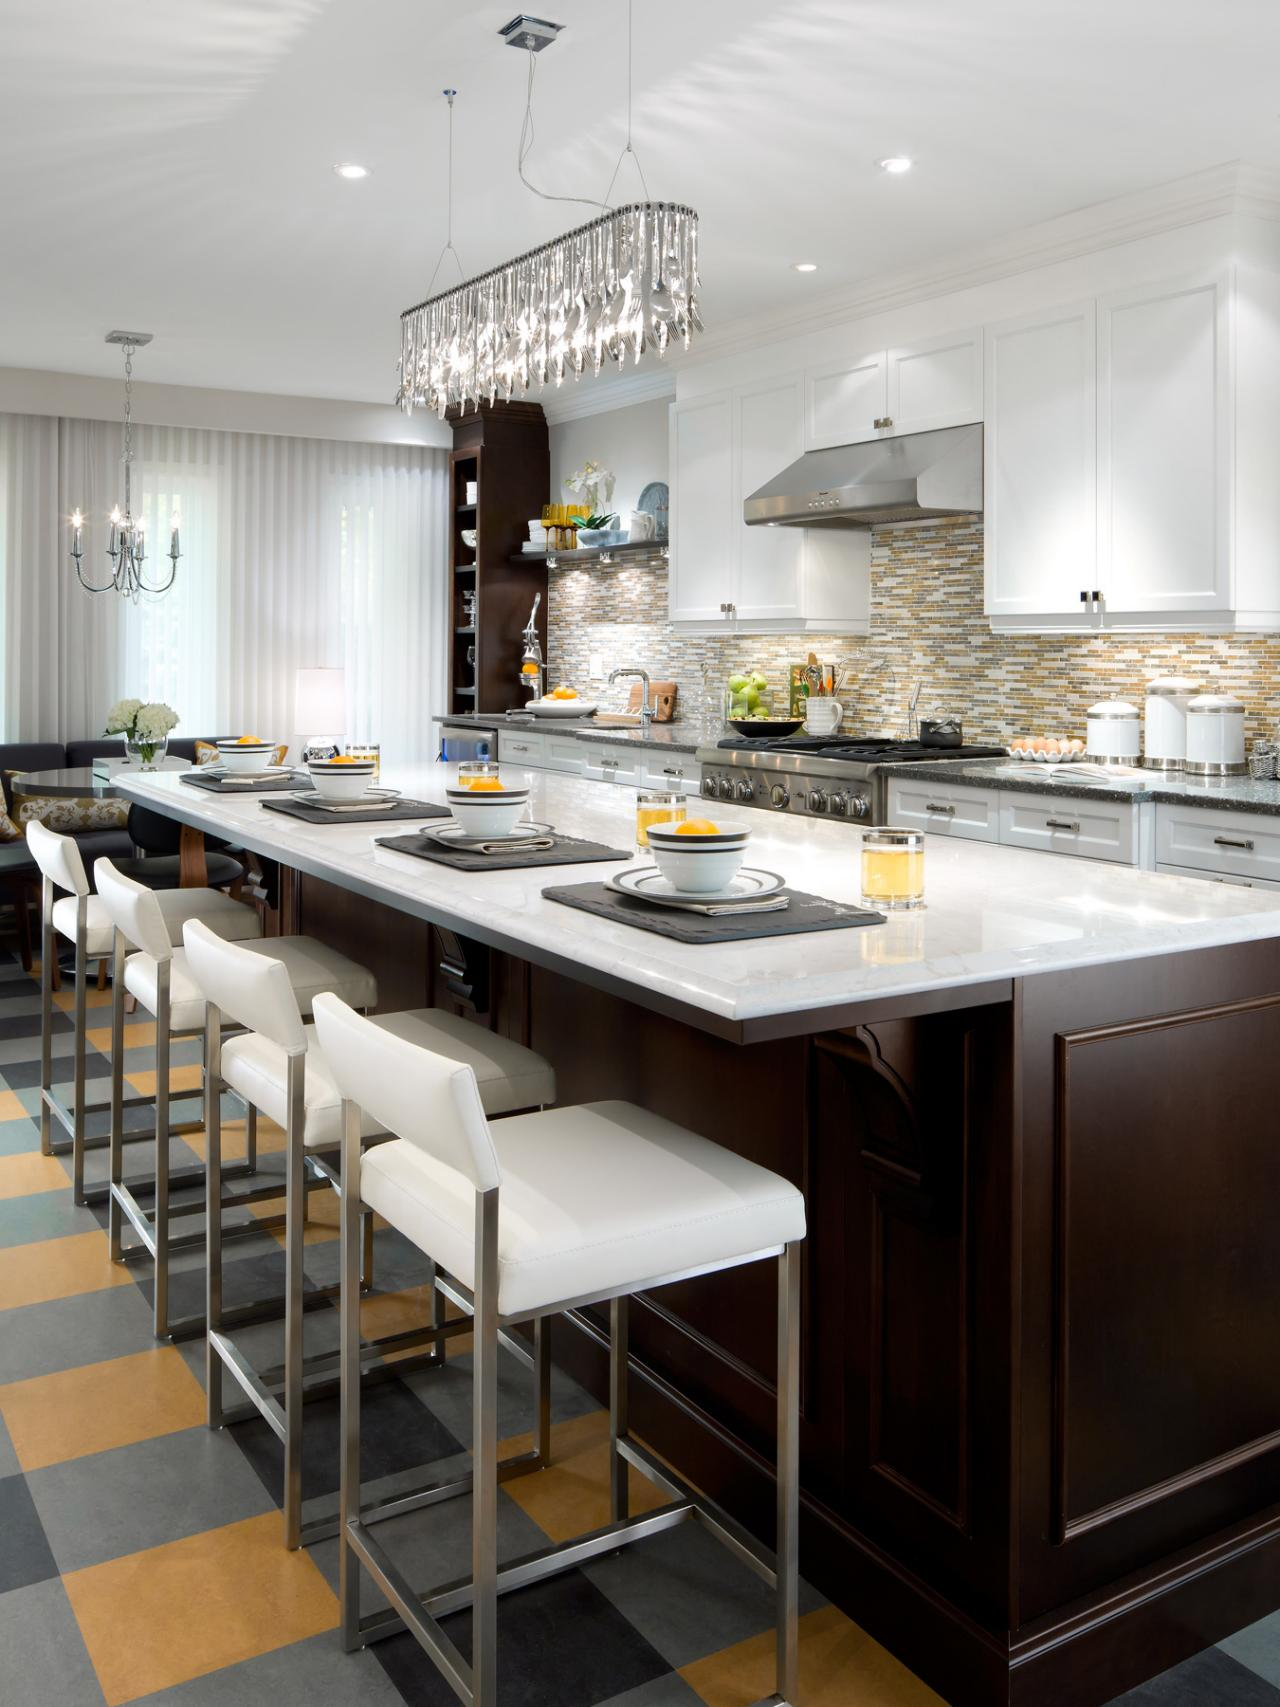 kitchen island with stools hgtv. Black Bedroom Furniture Sets. Home Design Ideas